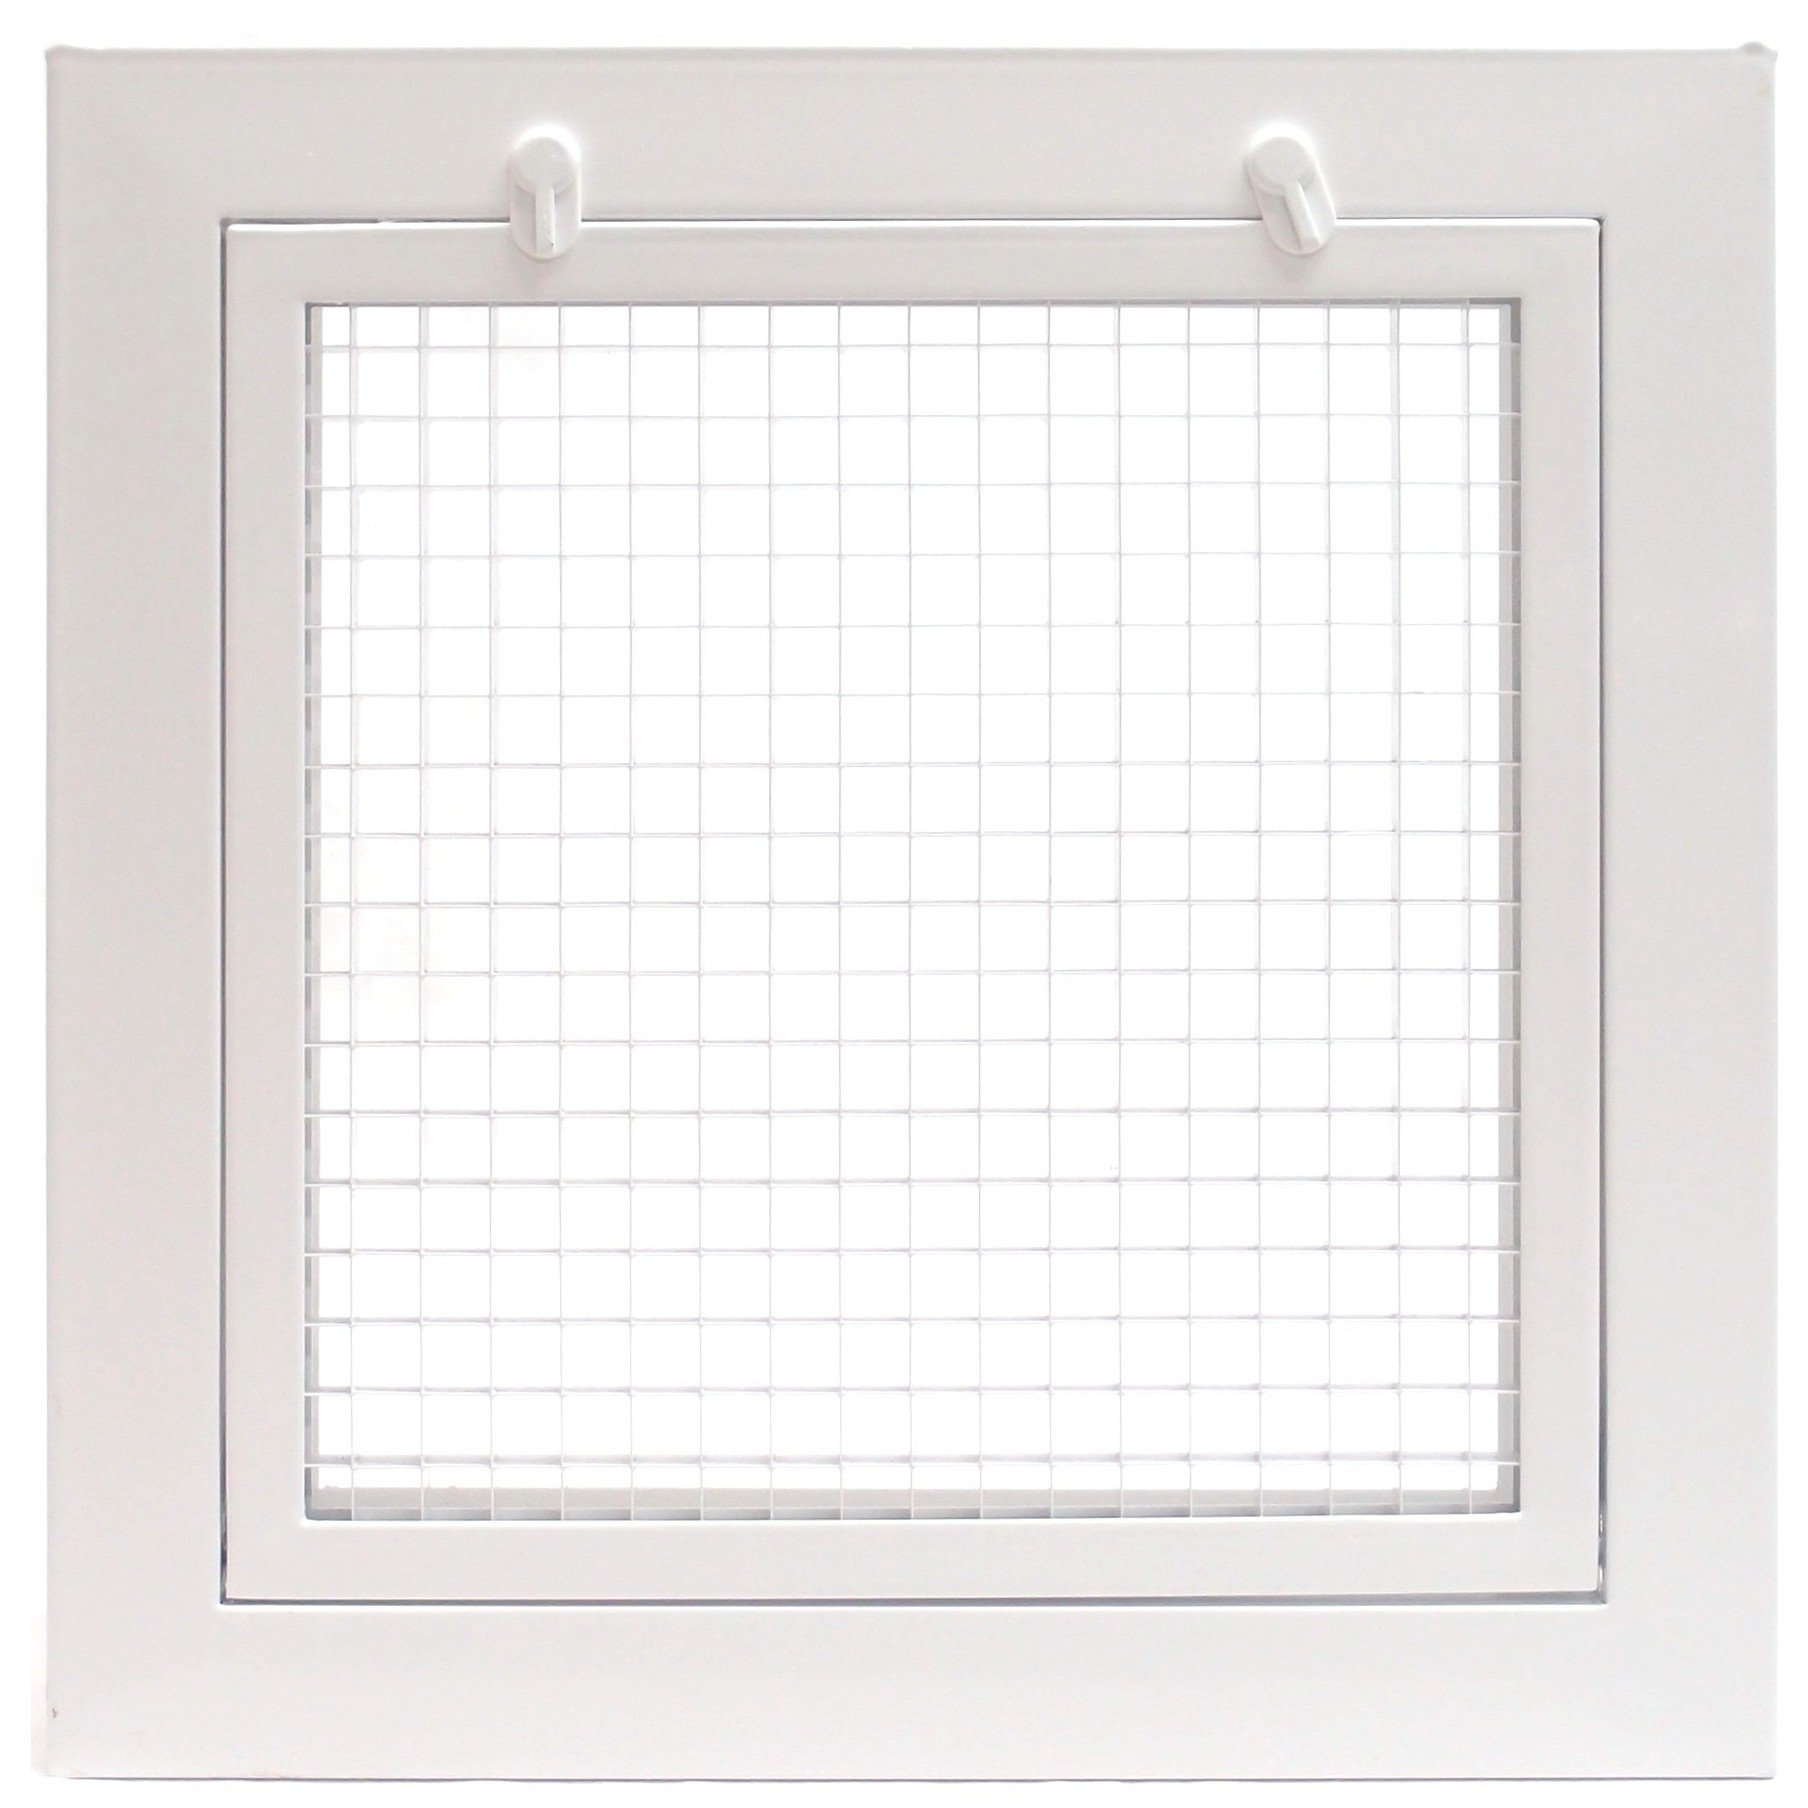 12'' x 20'' Cube Core Eggcrate Return Air Filter Grille for 1'' Filter - Aluminum - White [Outer Dimensions: 14.5'' w X 22.5'' h]